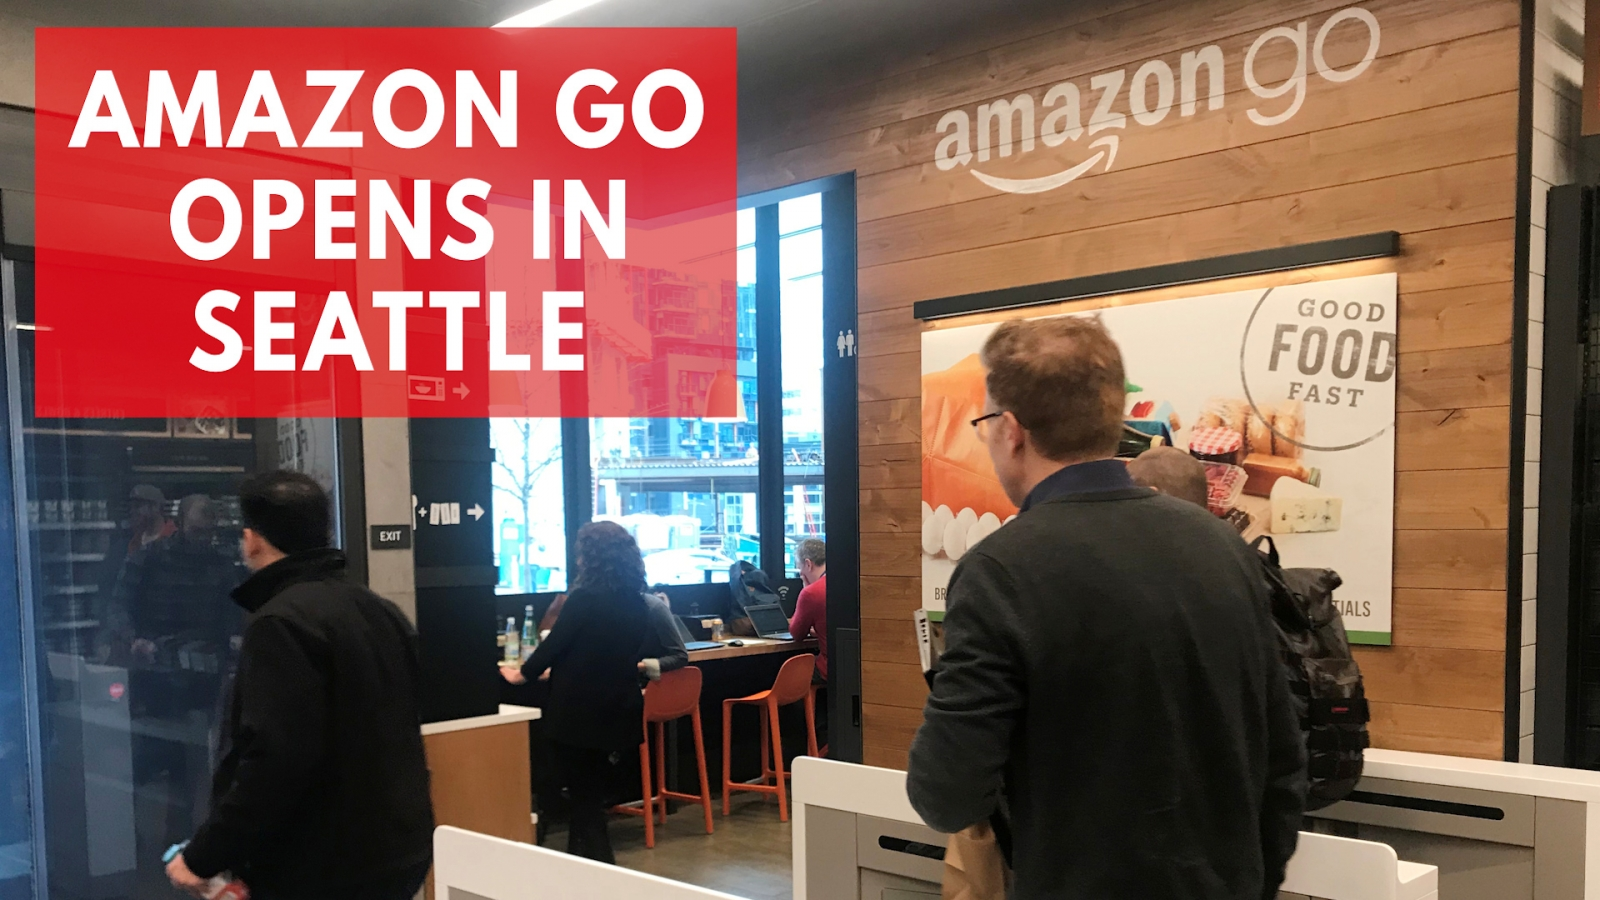 Amazon Go: New Cashier-Less Grocery Store Opens In Seattle